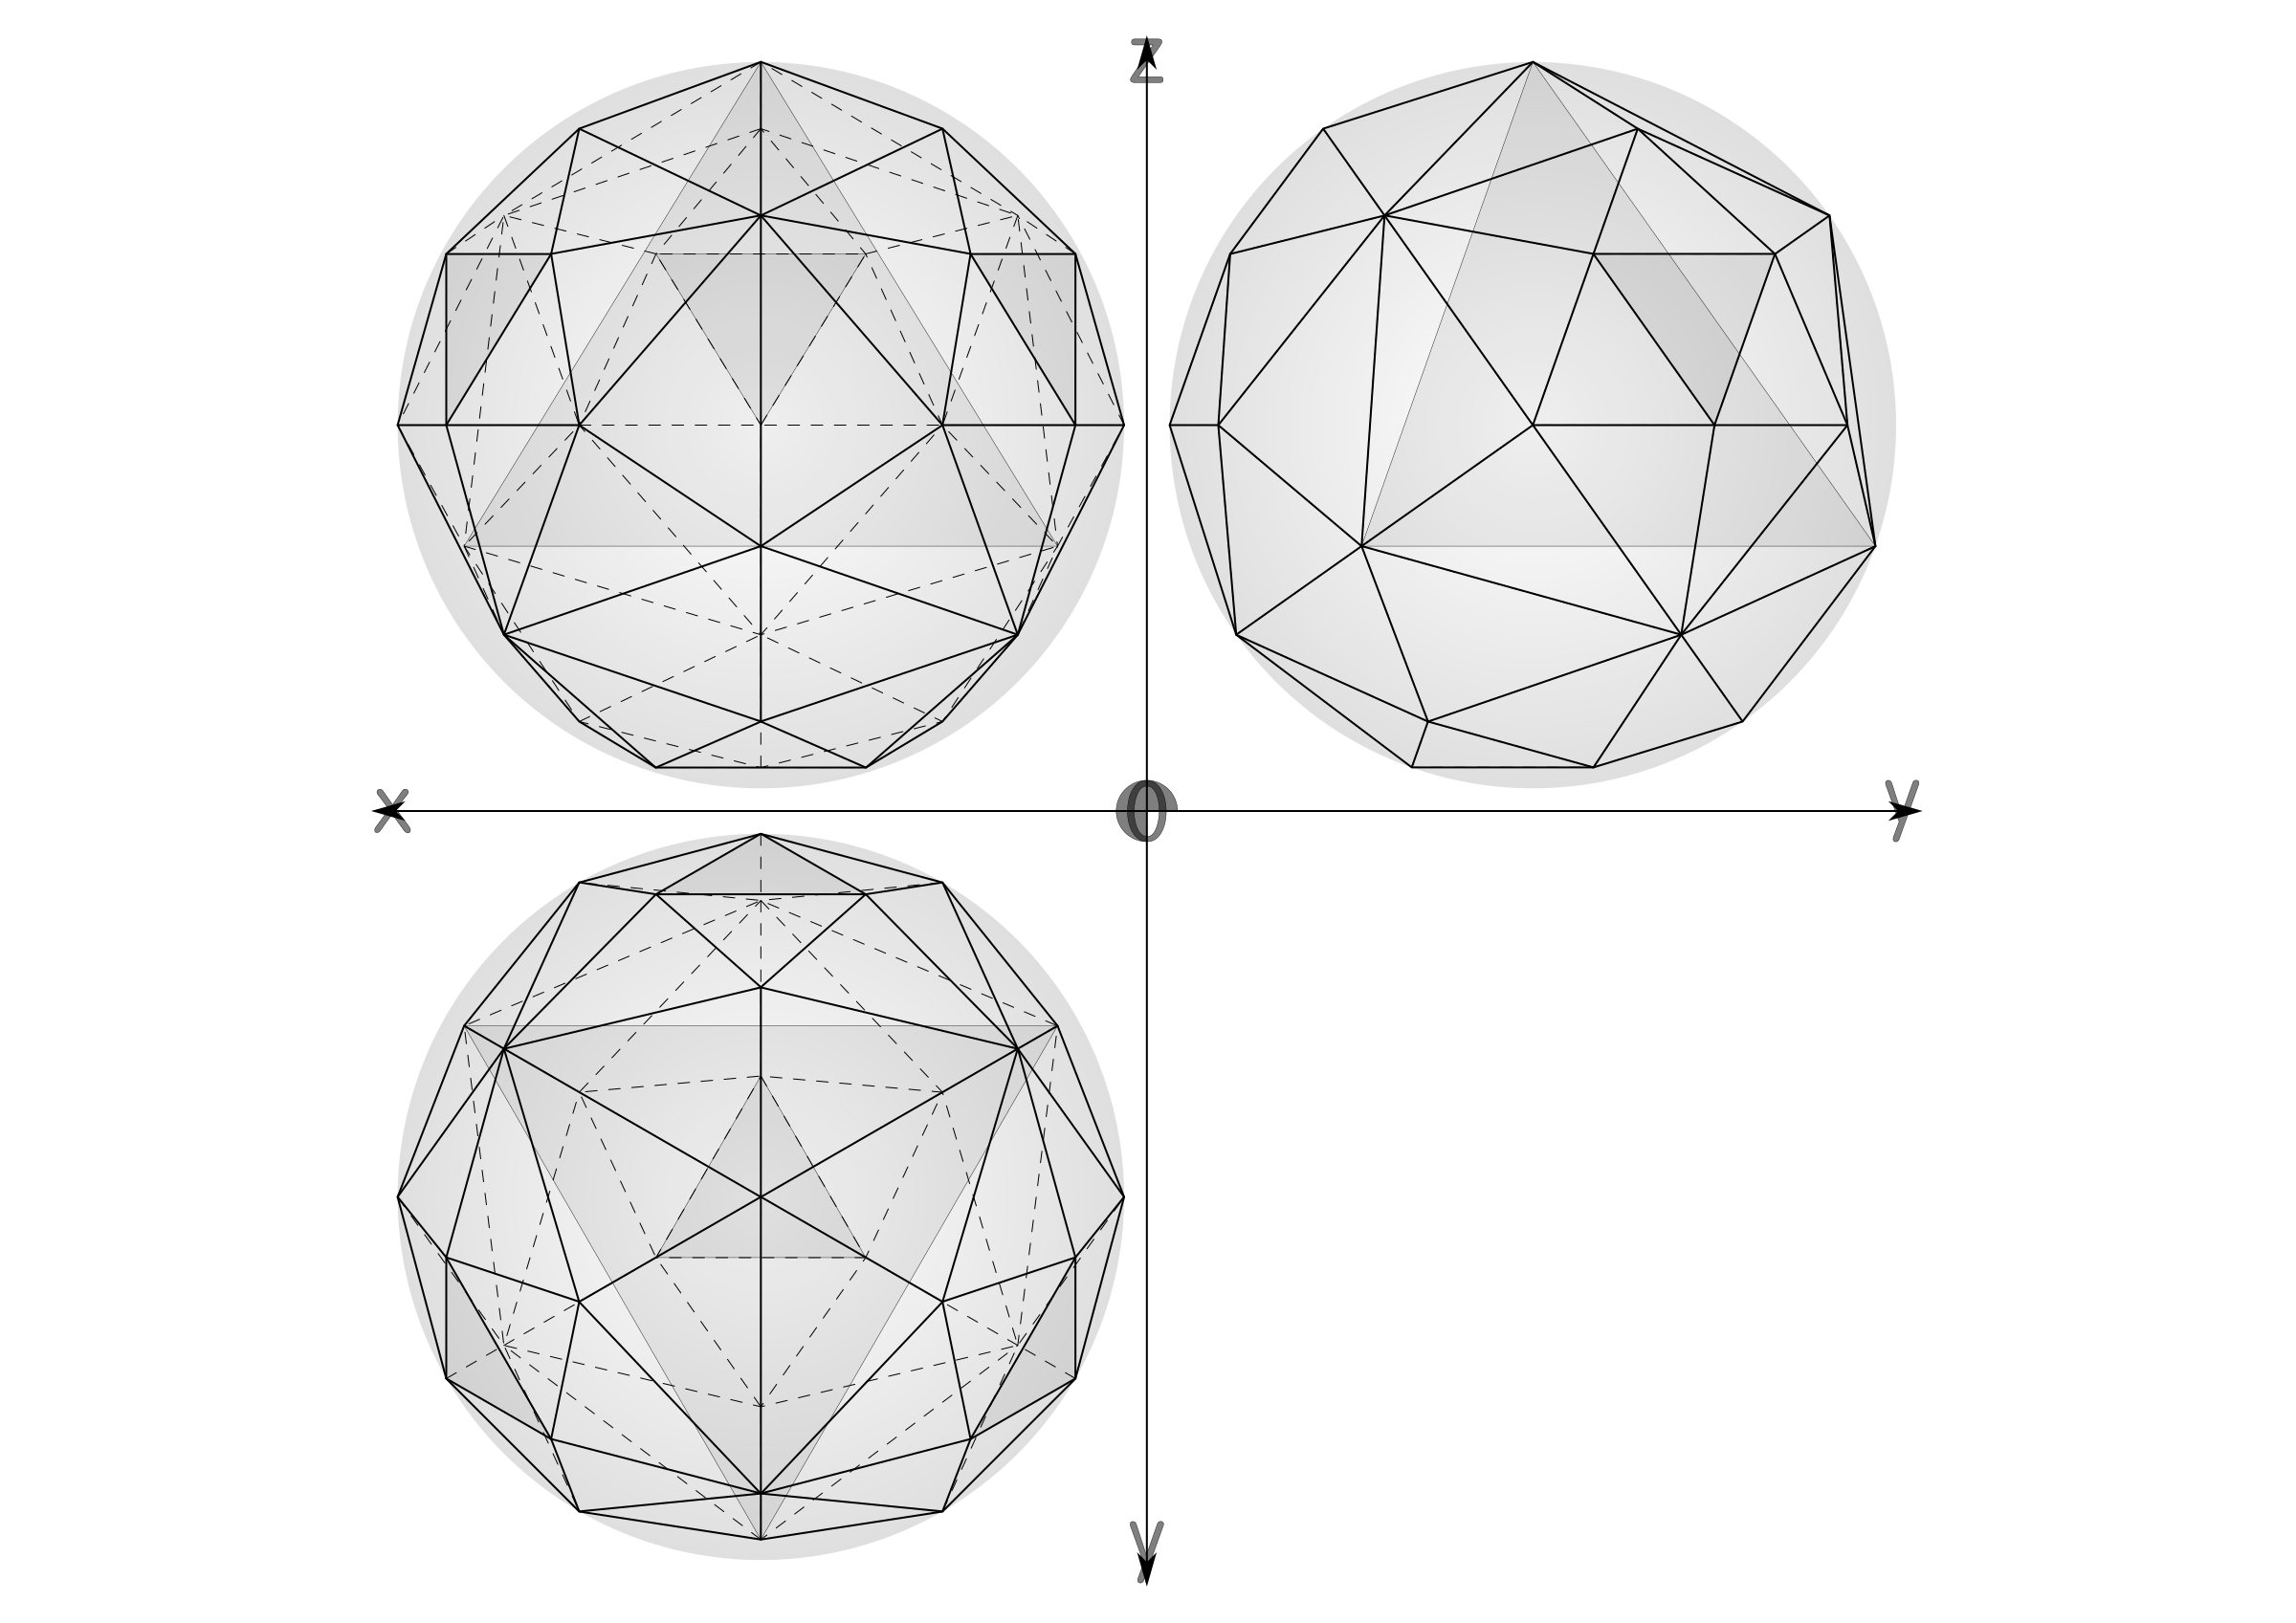 geodesic sphere recursive from tetrahedron, multiple layers by ric5sch